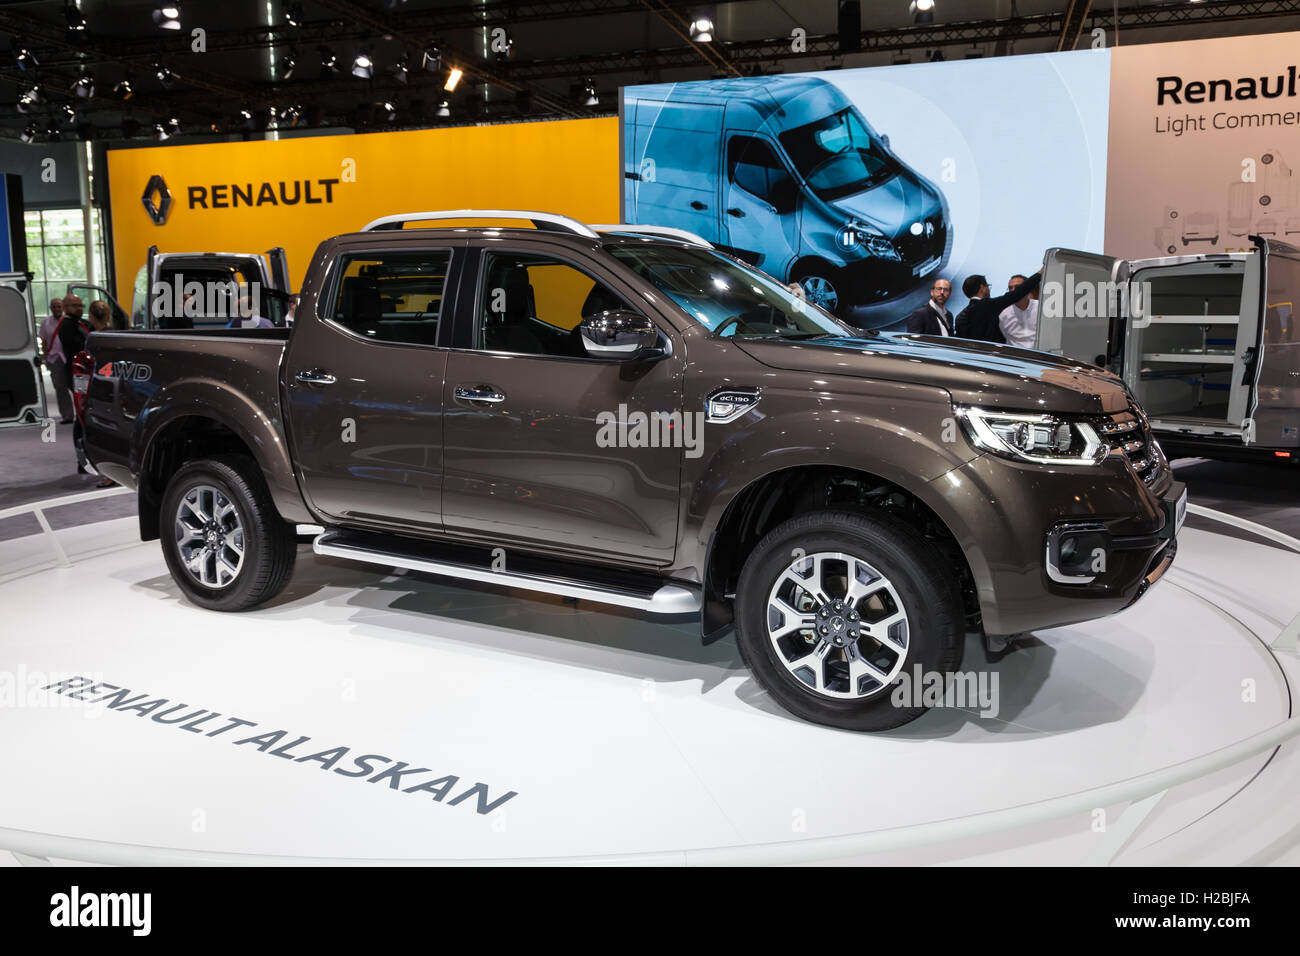 new renault alaskan 4x4 pickup truck at the iaa 2016 stock. Black Bedroom Furniture Sets. Home Design Ideas